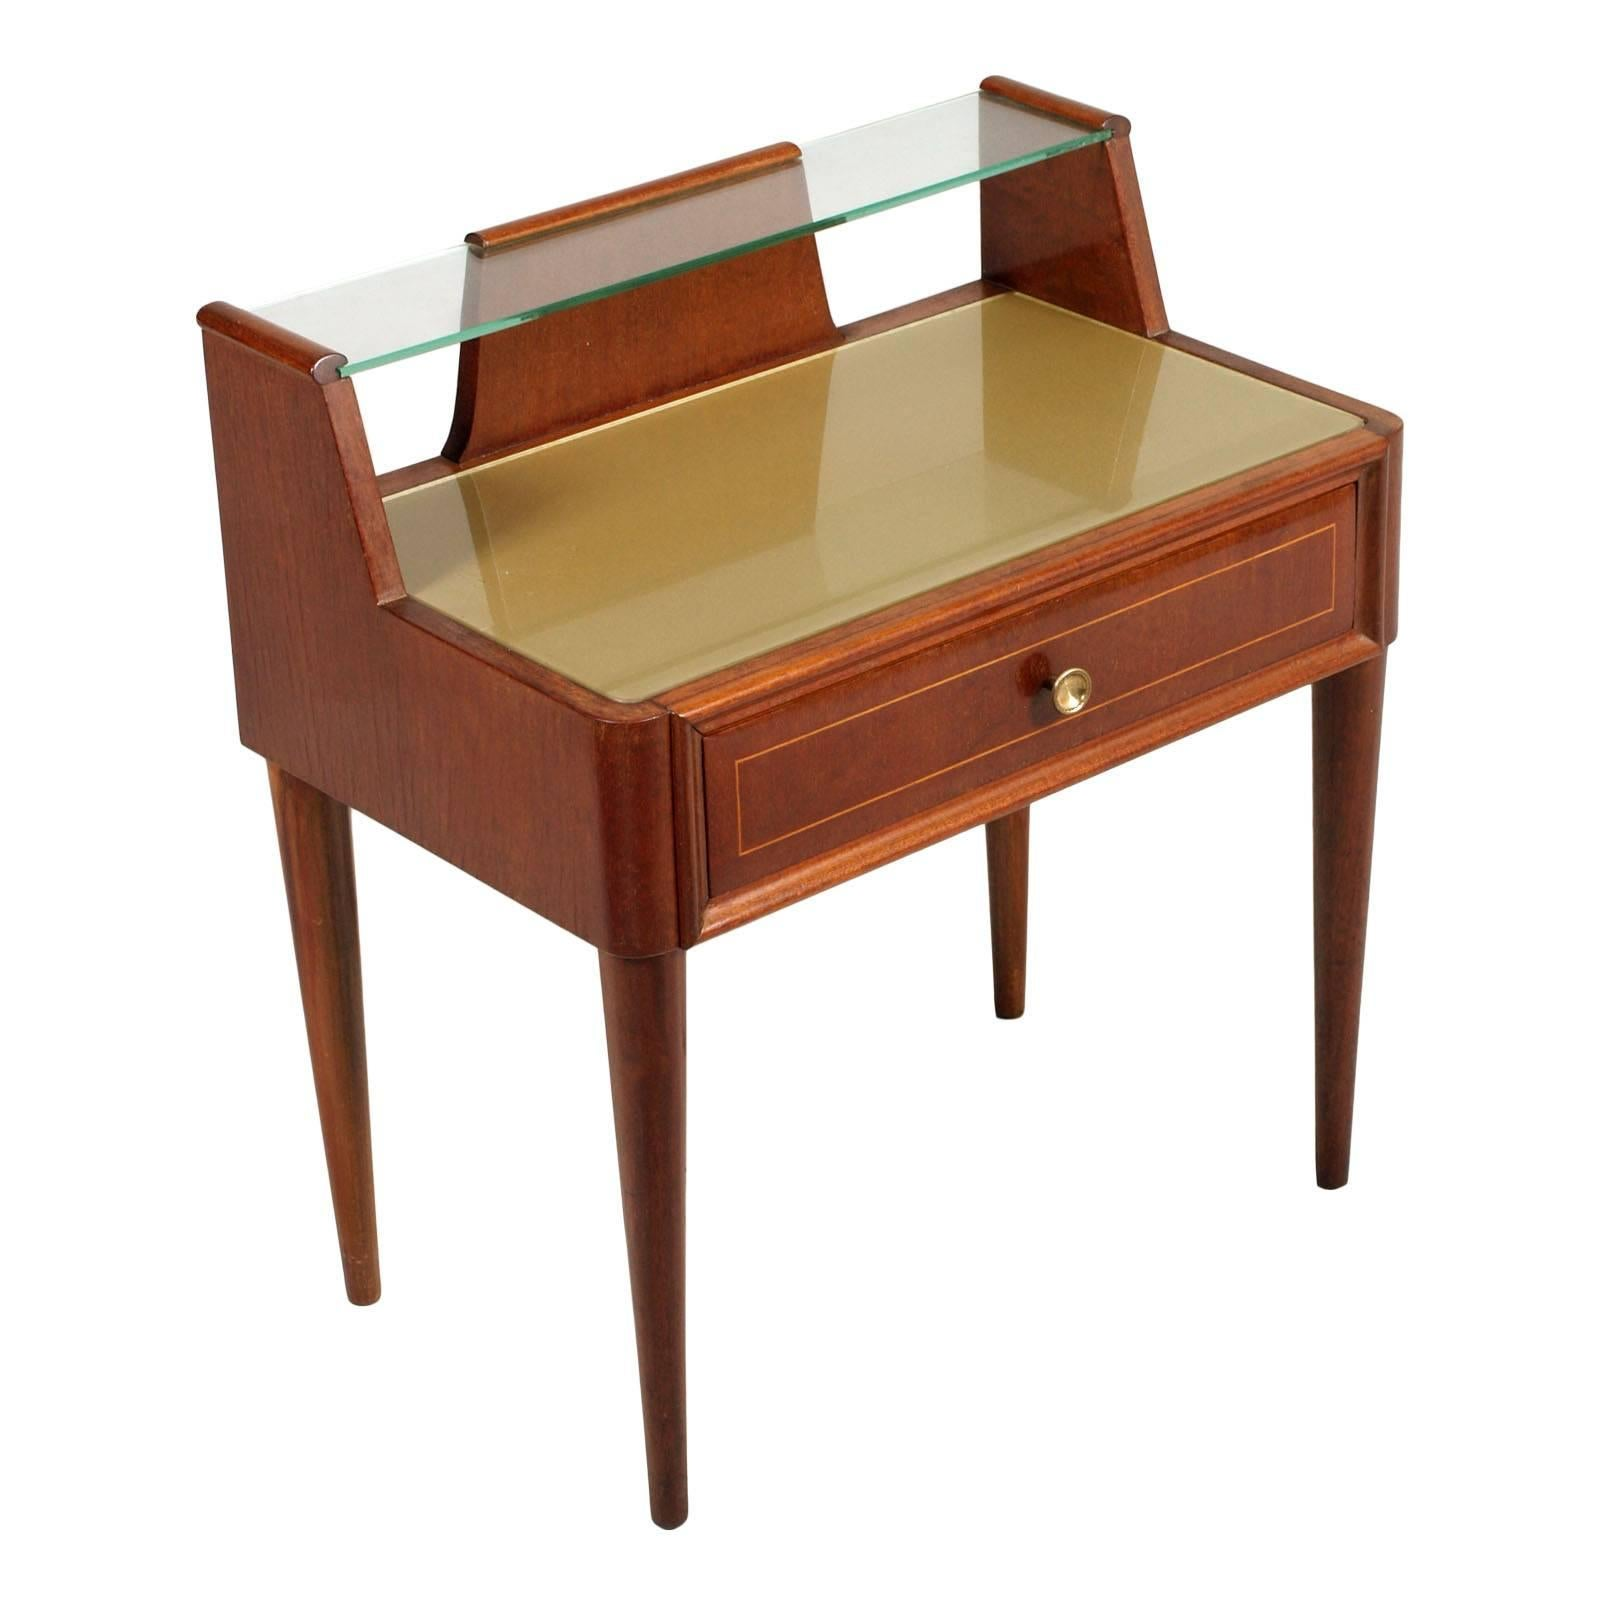 Italy Gio Ponti manner Nightstand in Walnut, Crystal Tops, by Brugnoli Mobili